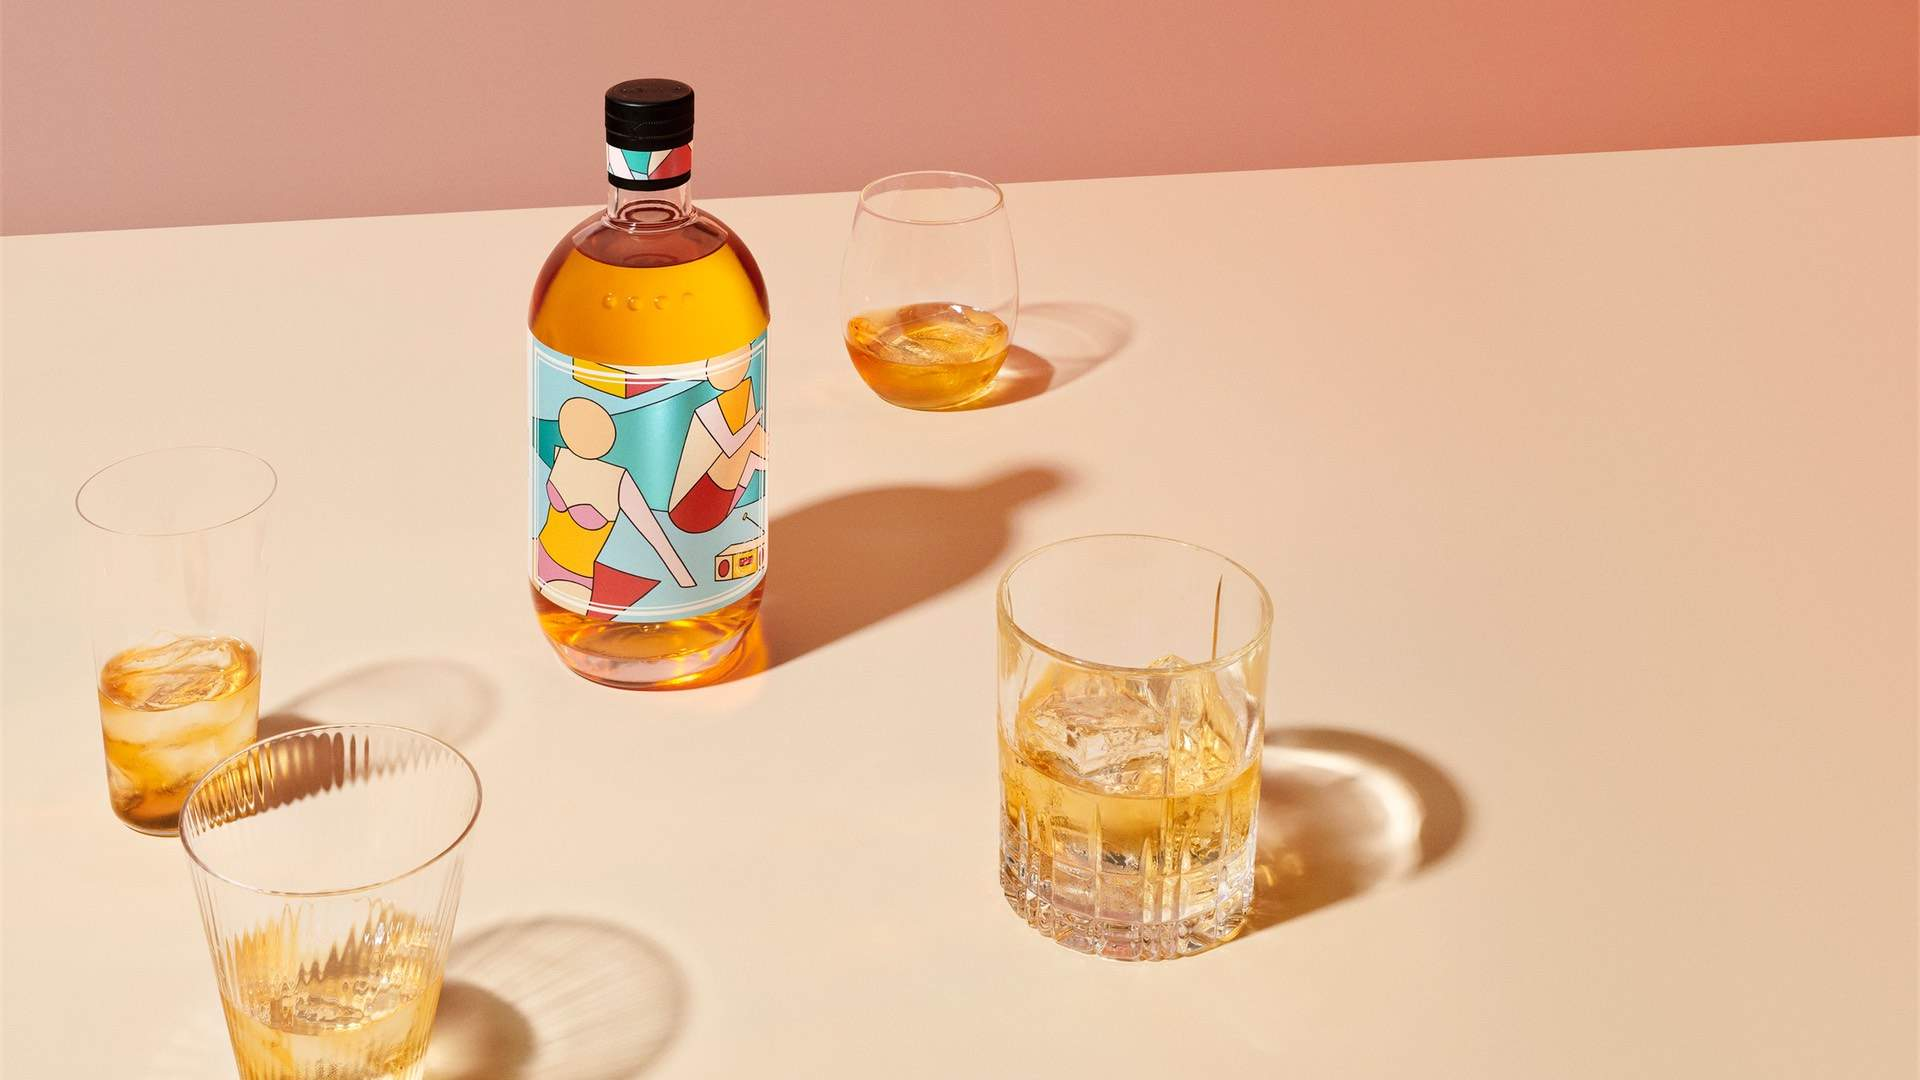 Four Pillars Is About to Release Its 2018 Christmas Gin So You Can Get Drunk on Pudding with Nan